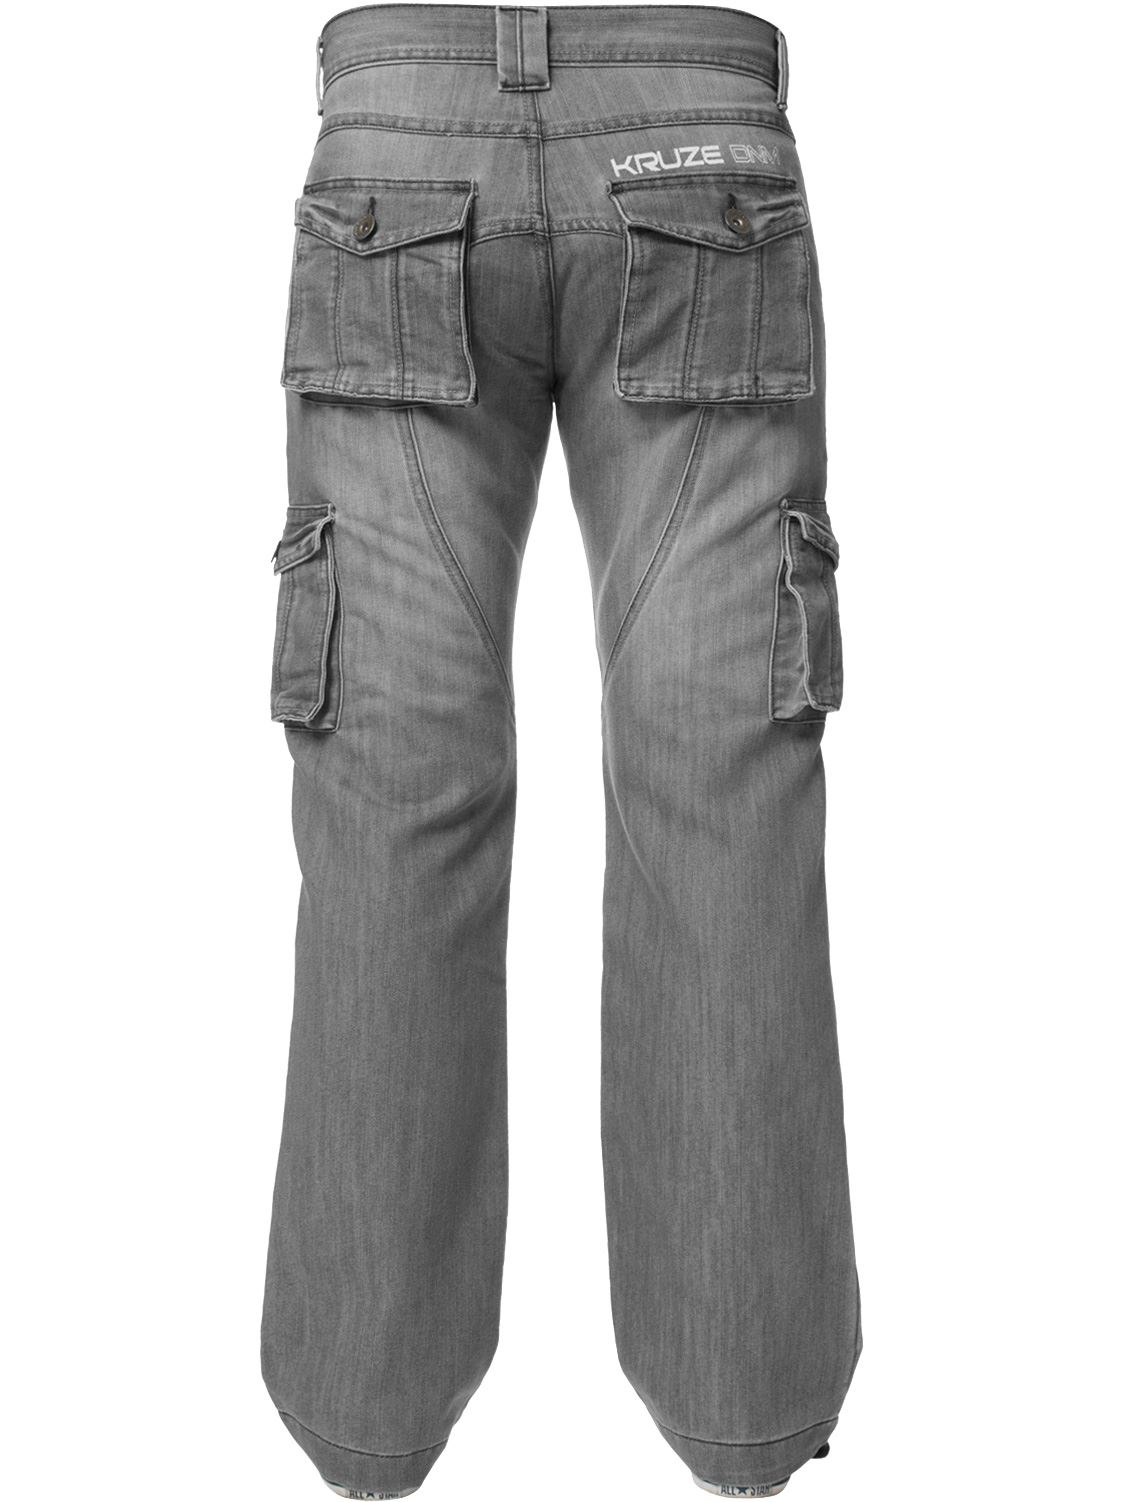 Kruze-Mens-Cargo-Combat-Jeans-Casual-Work-Denim-Pants-Big-Tall-All-Waist-Sizes thumbnail 37